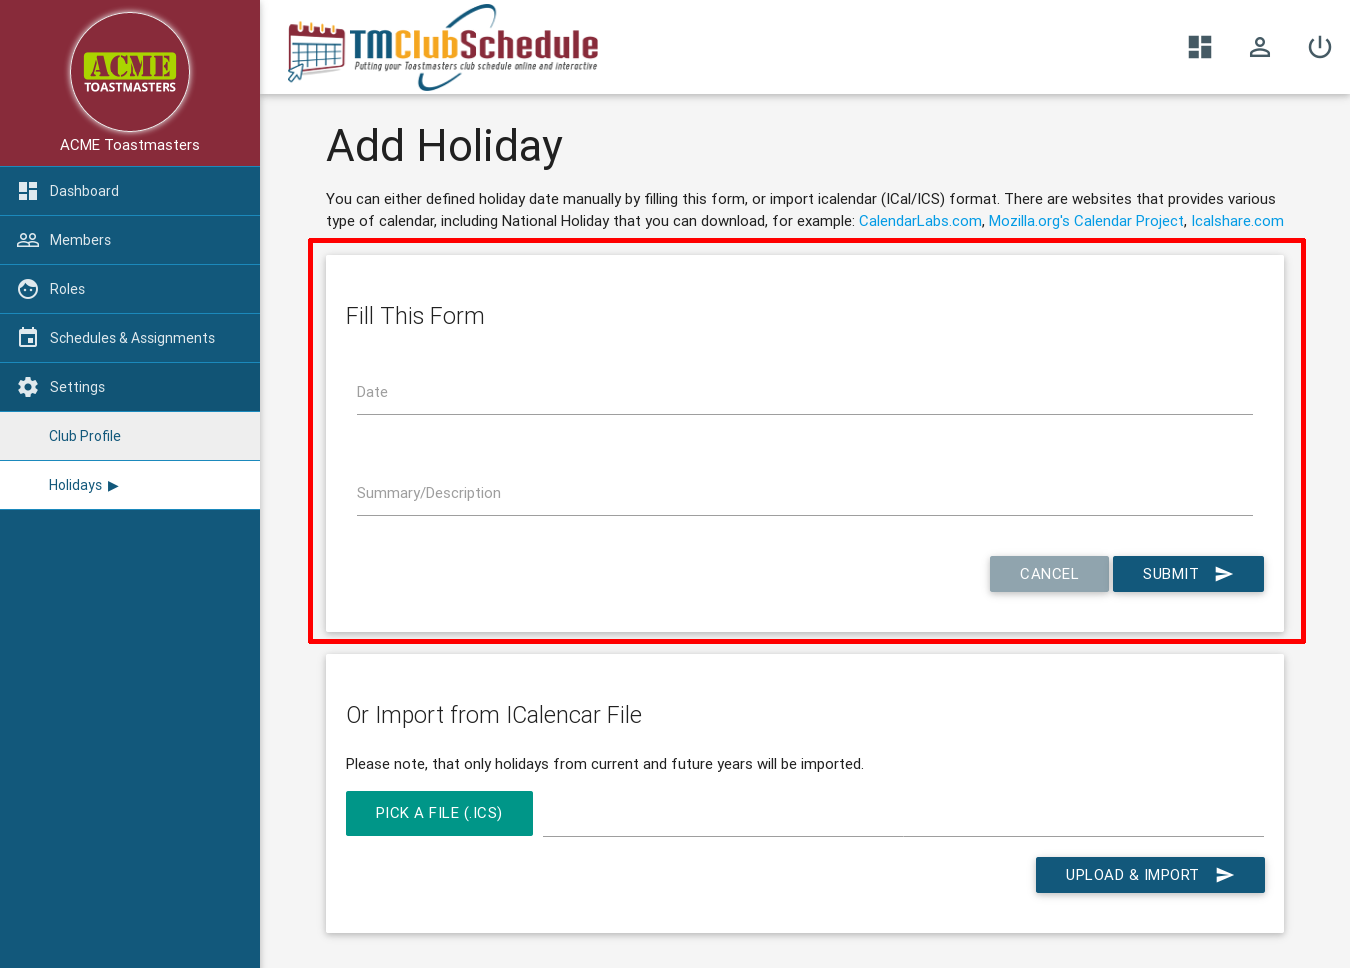 Screenshot: New Holiday Form